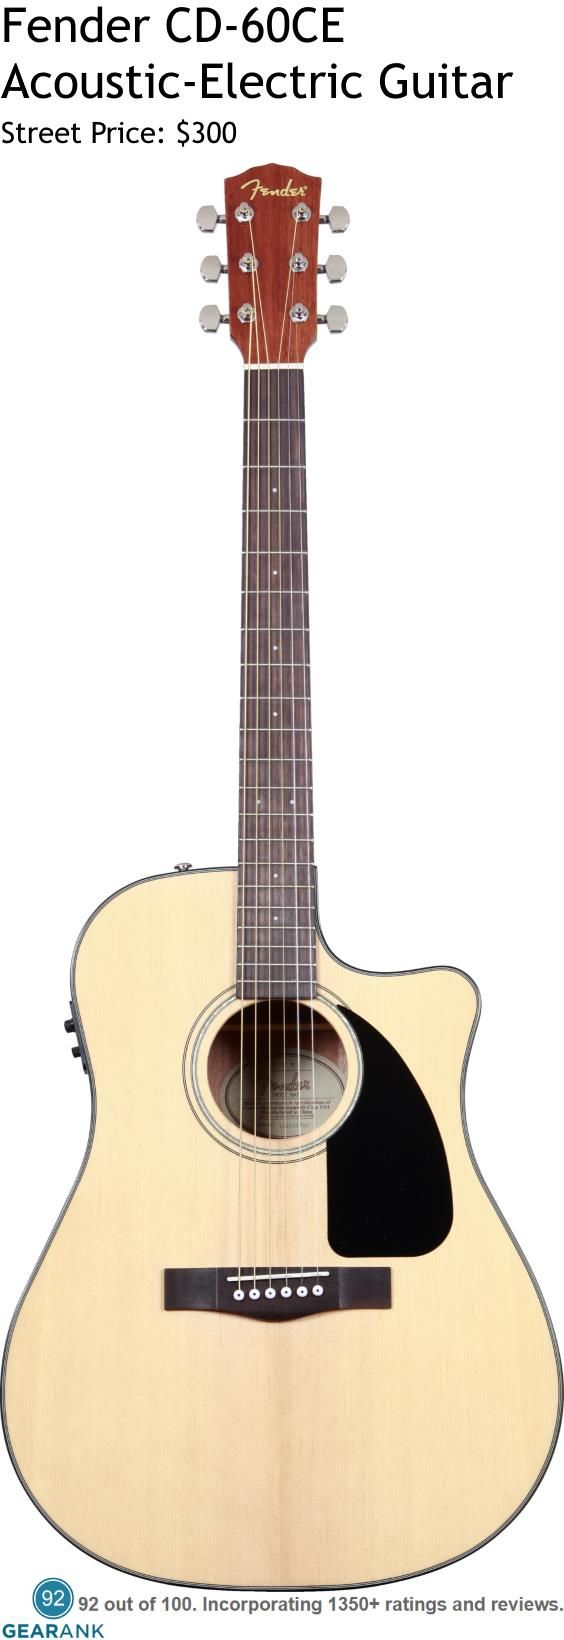 Electro-acoustic guitar: features of choice